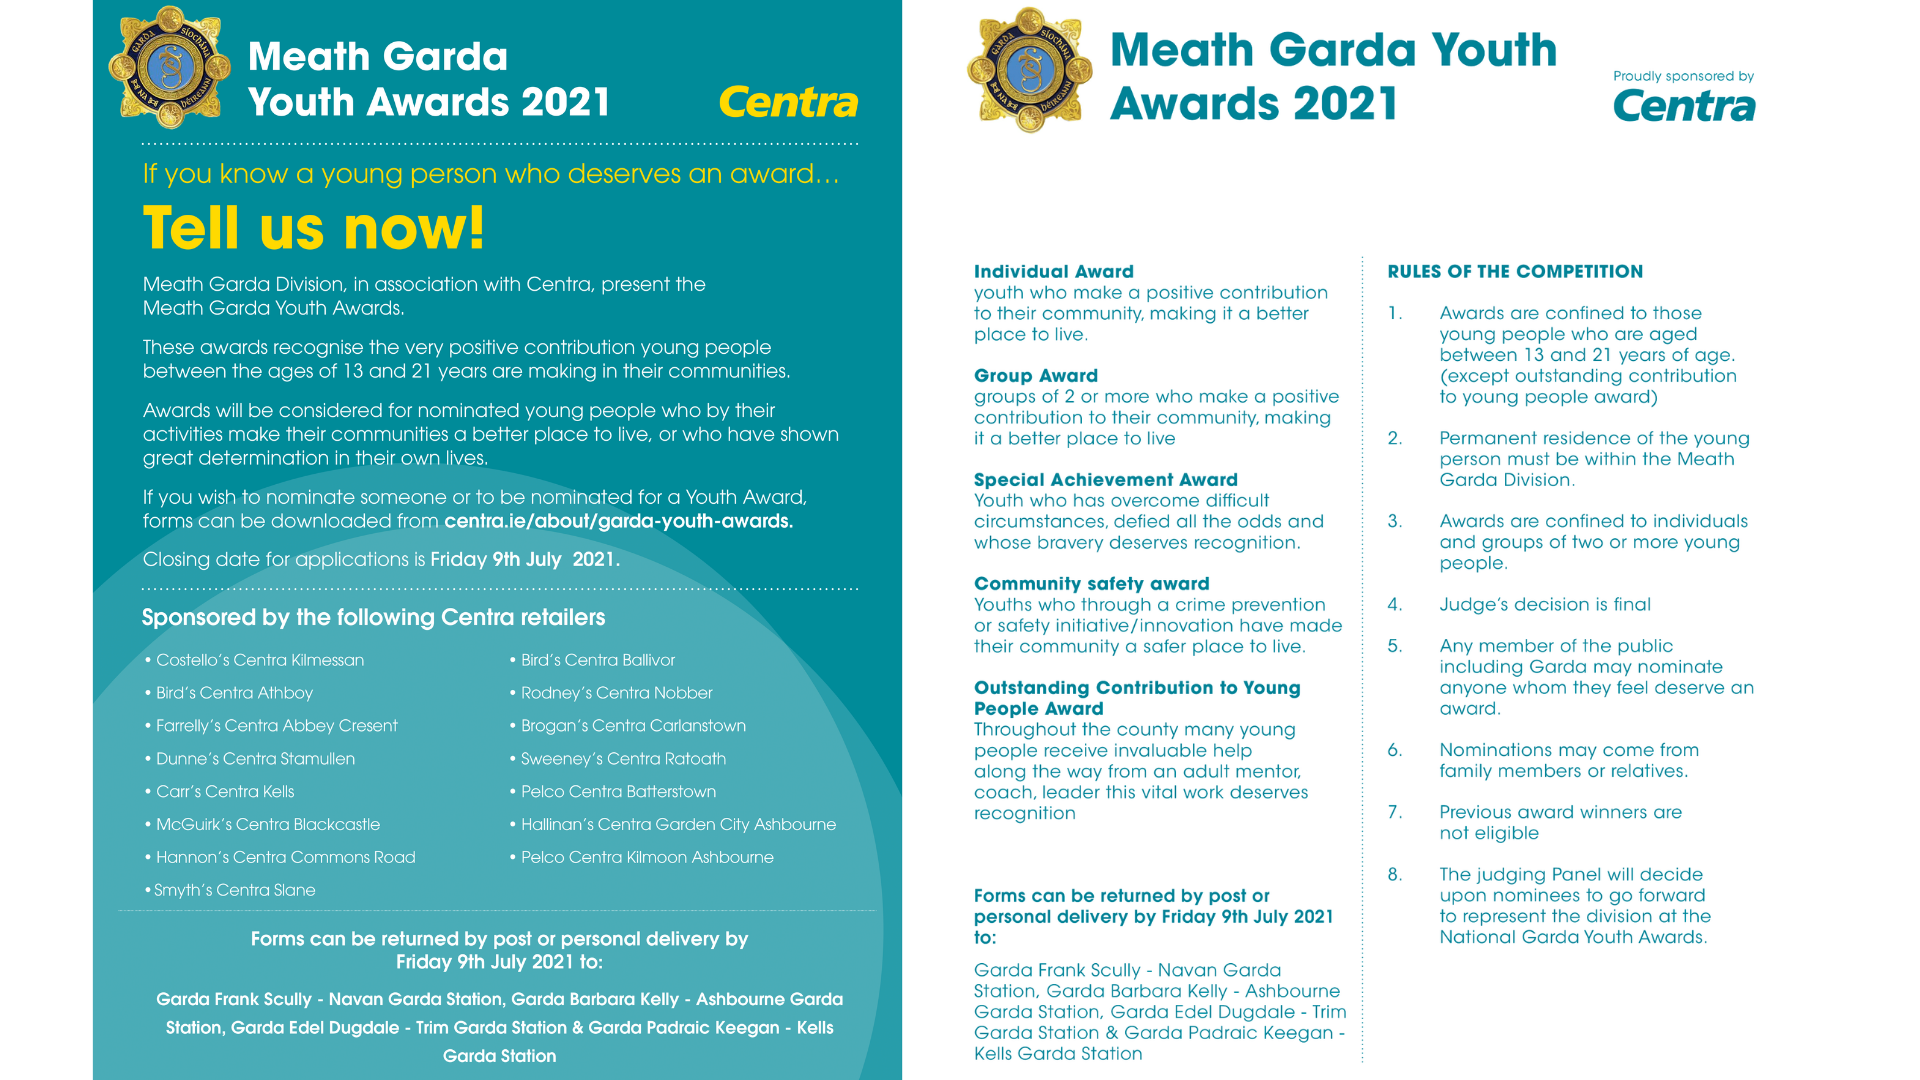 2021 Meath Garda Youth Awards – Nominations are open!